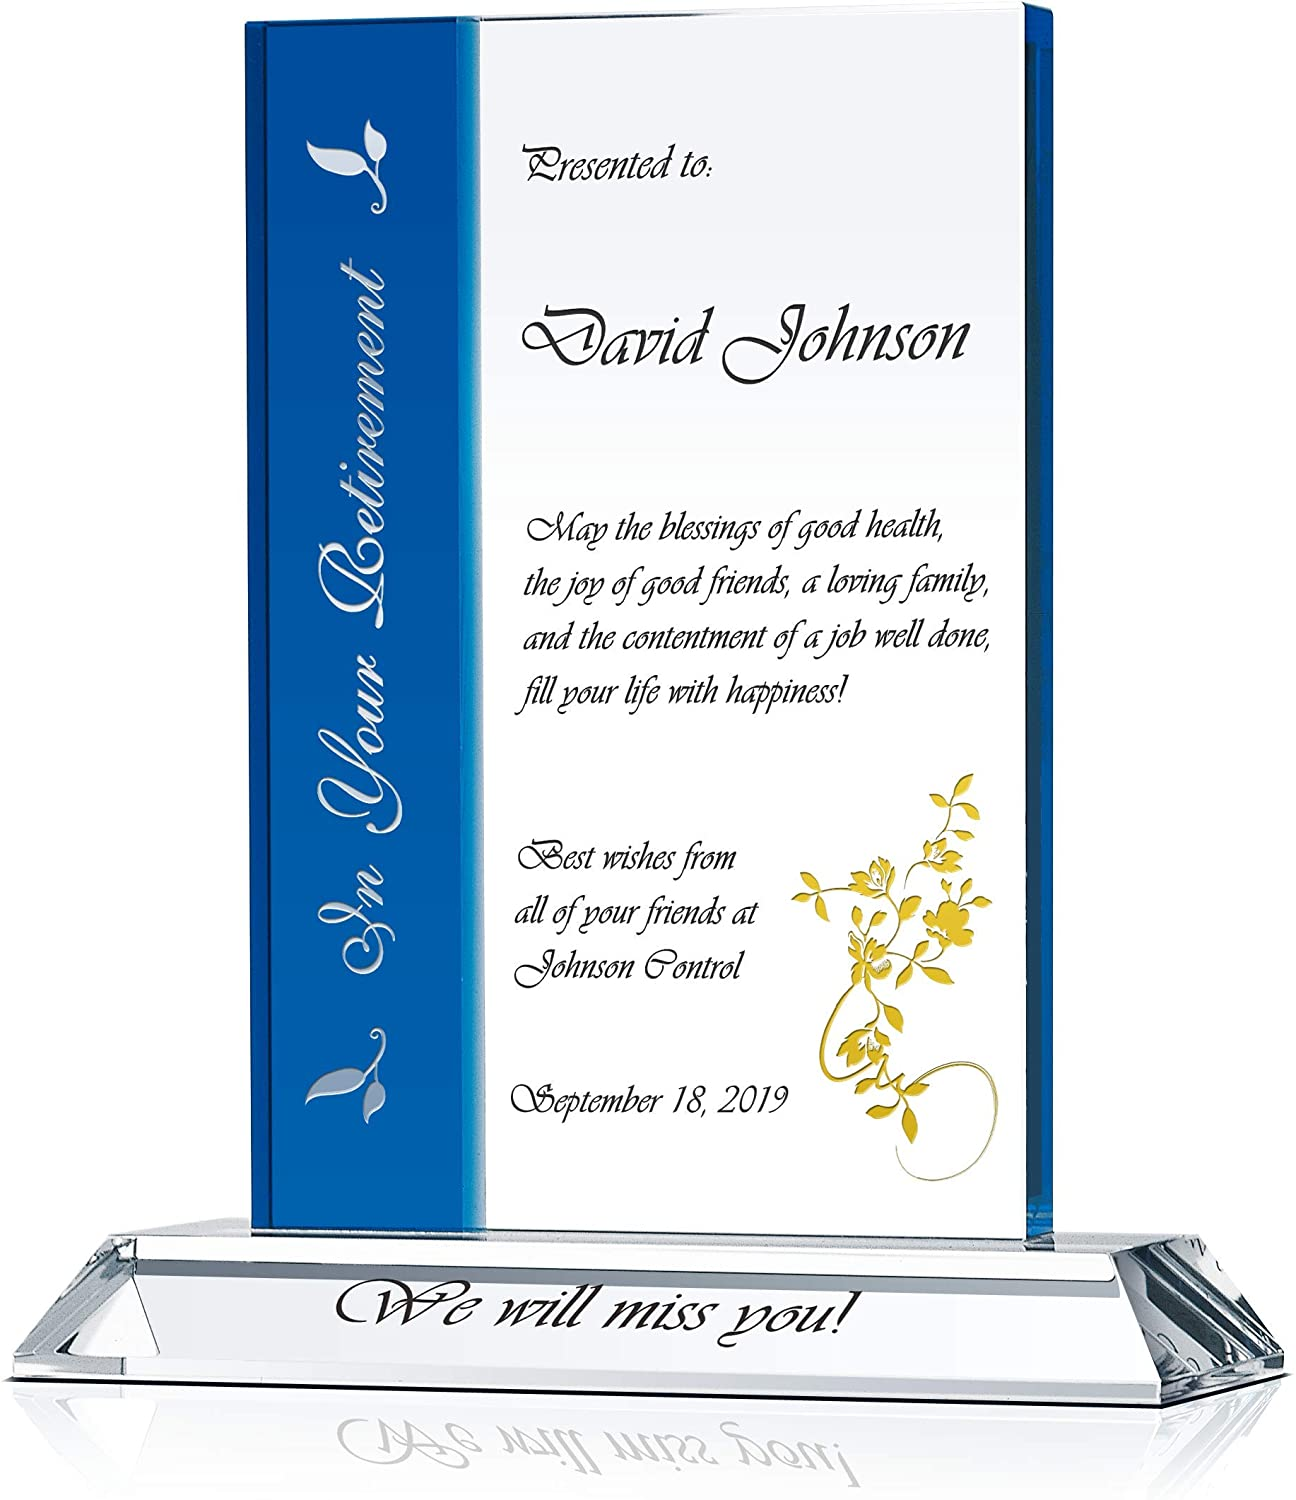 Personalized Crystal Retirement Gift Plaque for Man and Woman, for Employee, Staff, Coworker, Colleague & Friend, Customized with Retiree's Name, Retirement Date, Company Name (L - 9